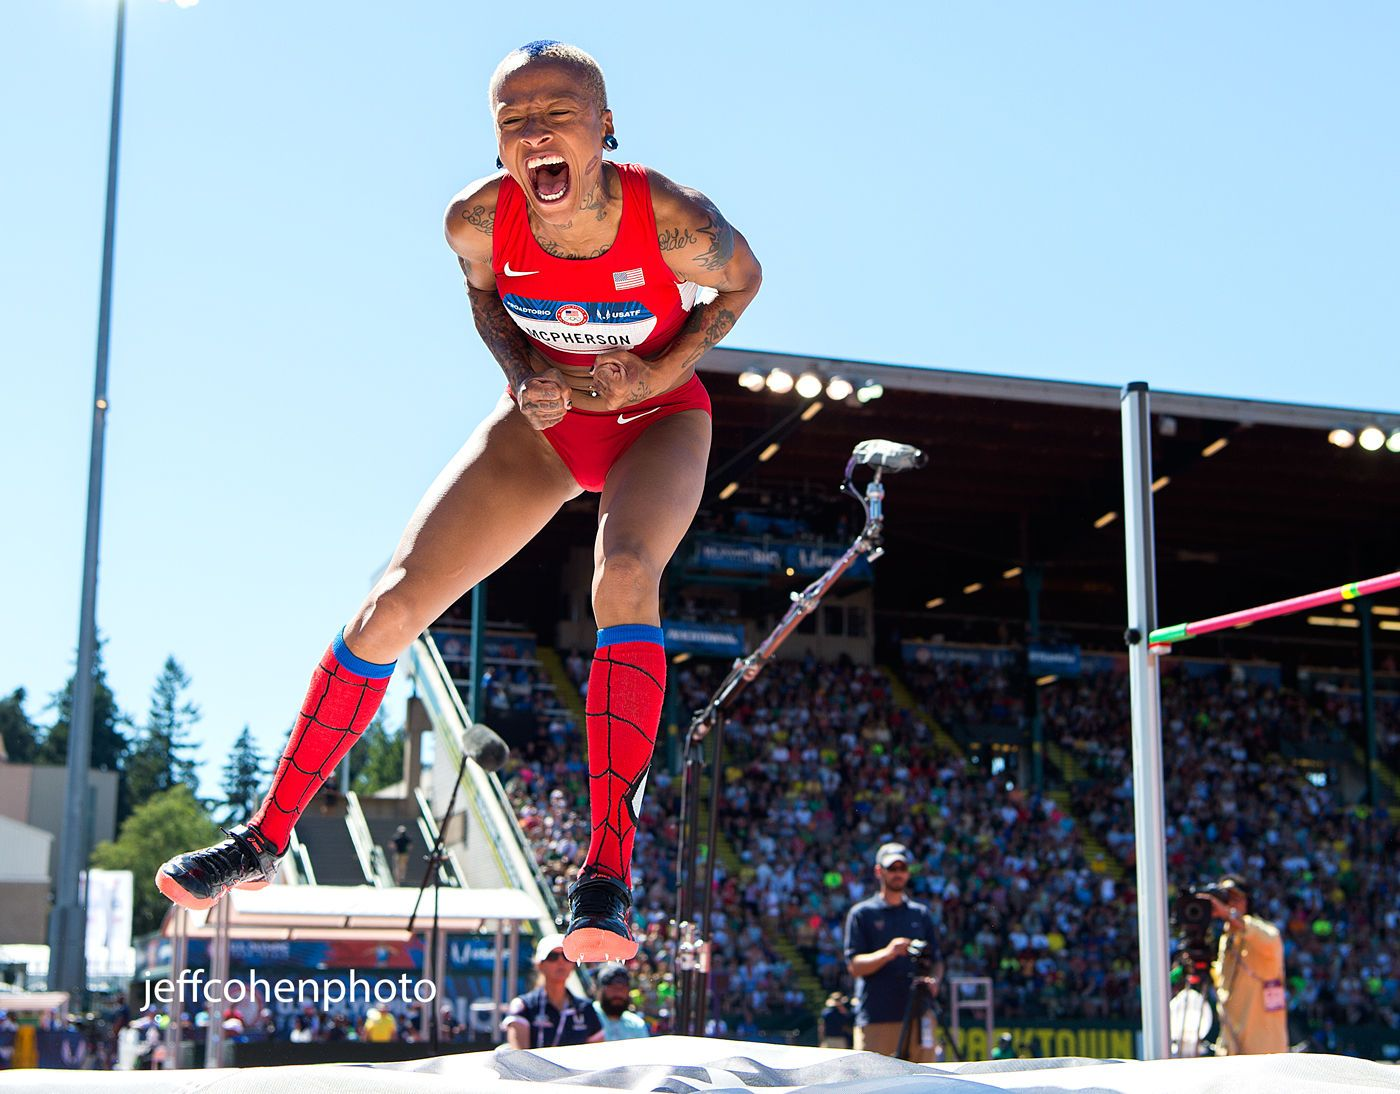 1r2016_oly_trials_day_3_inika_hjw_jeff_cohen_photo_11929_web.jpg